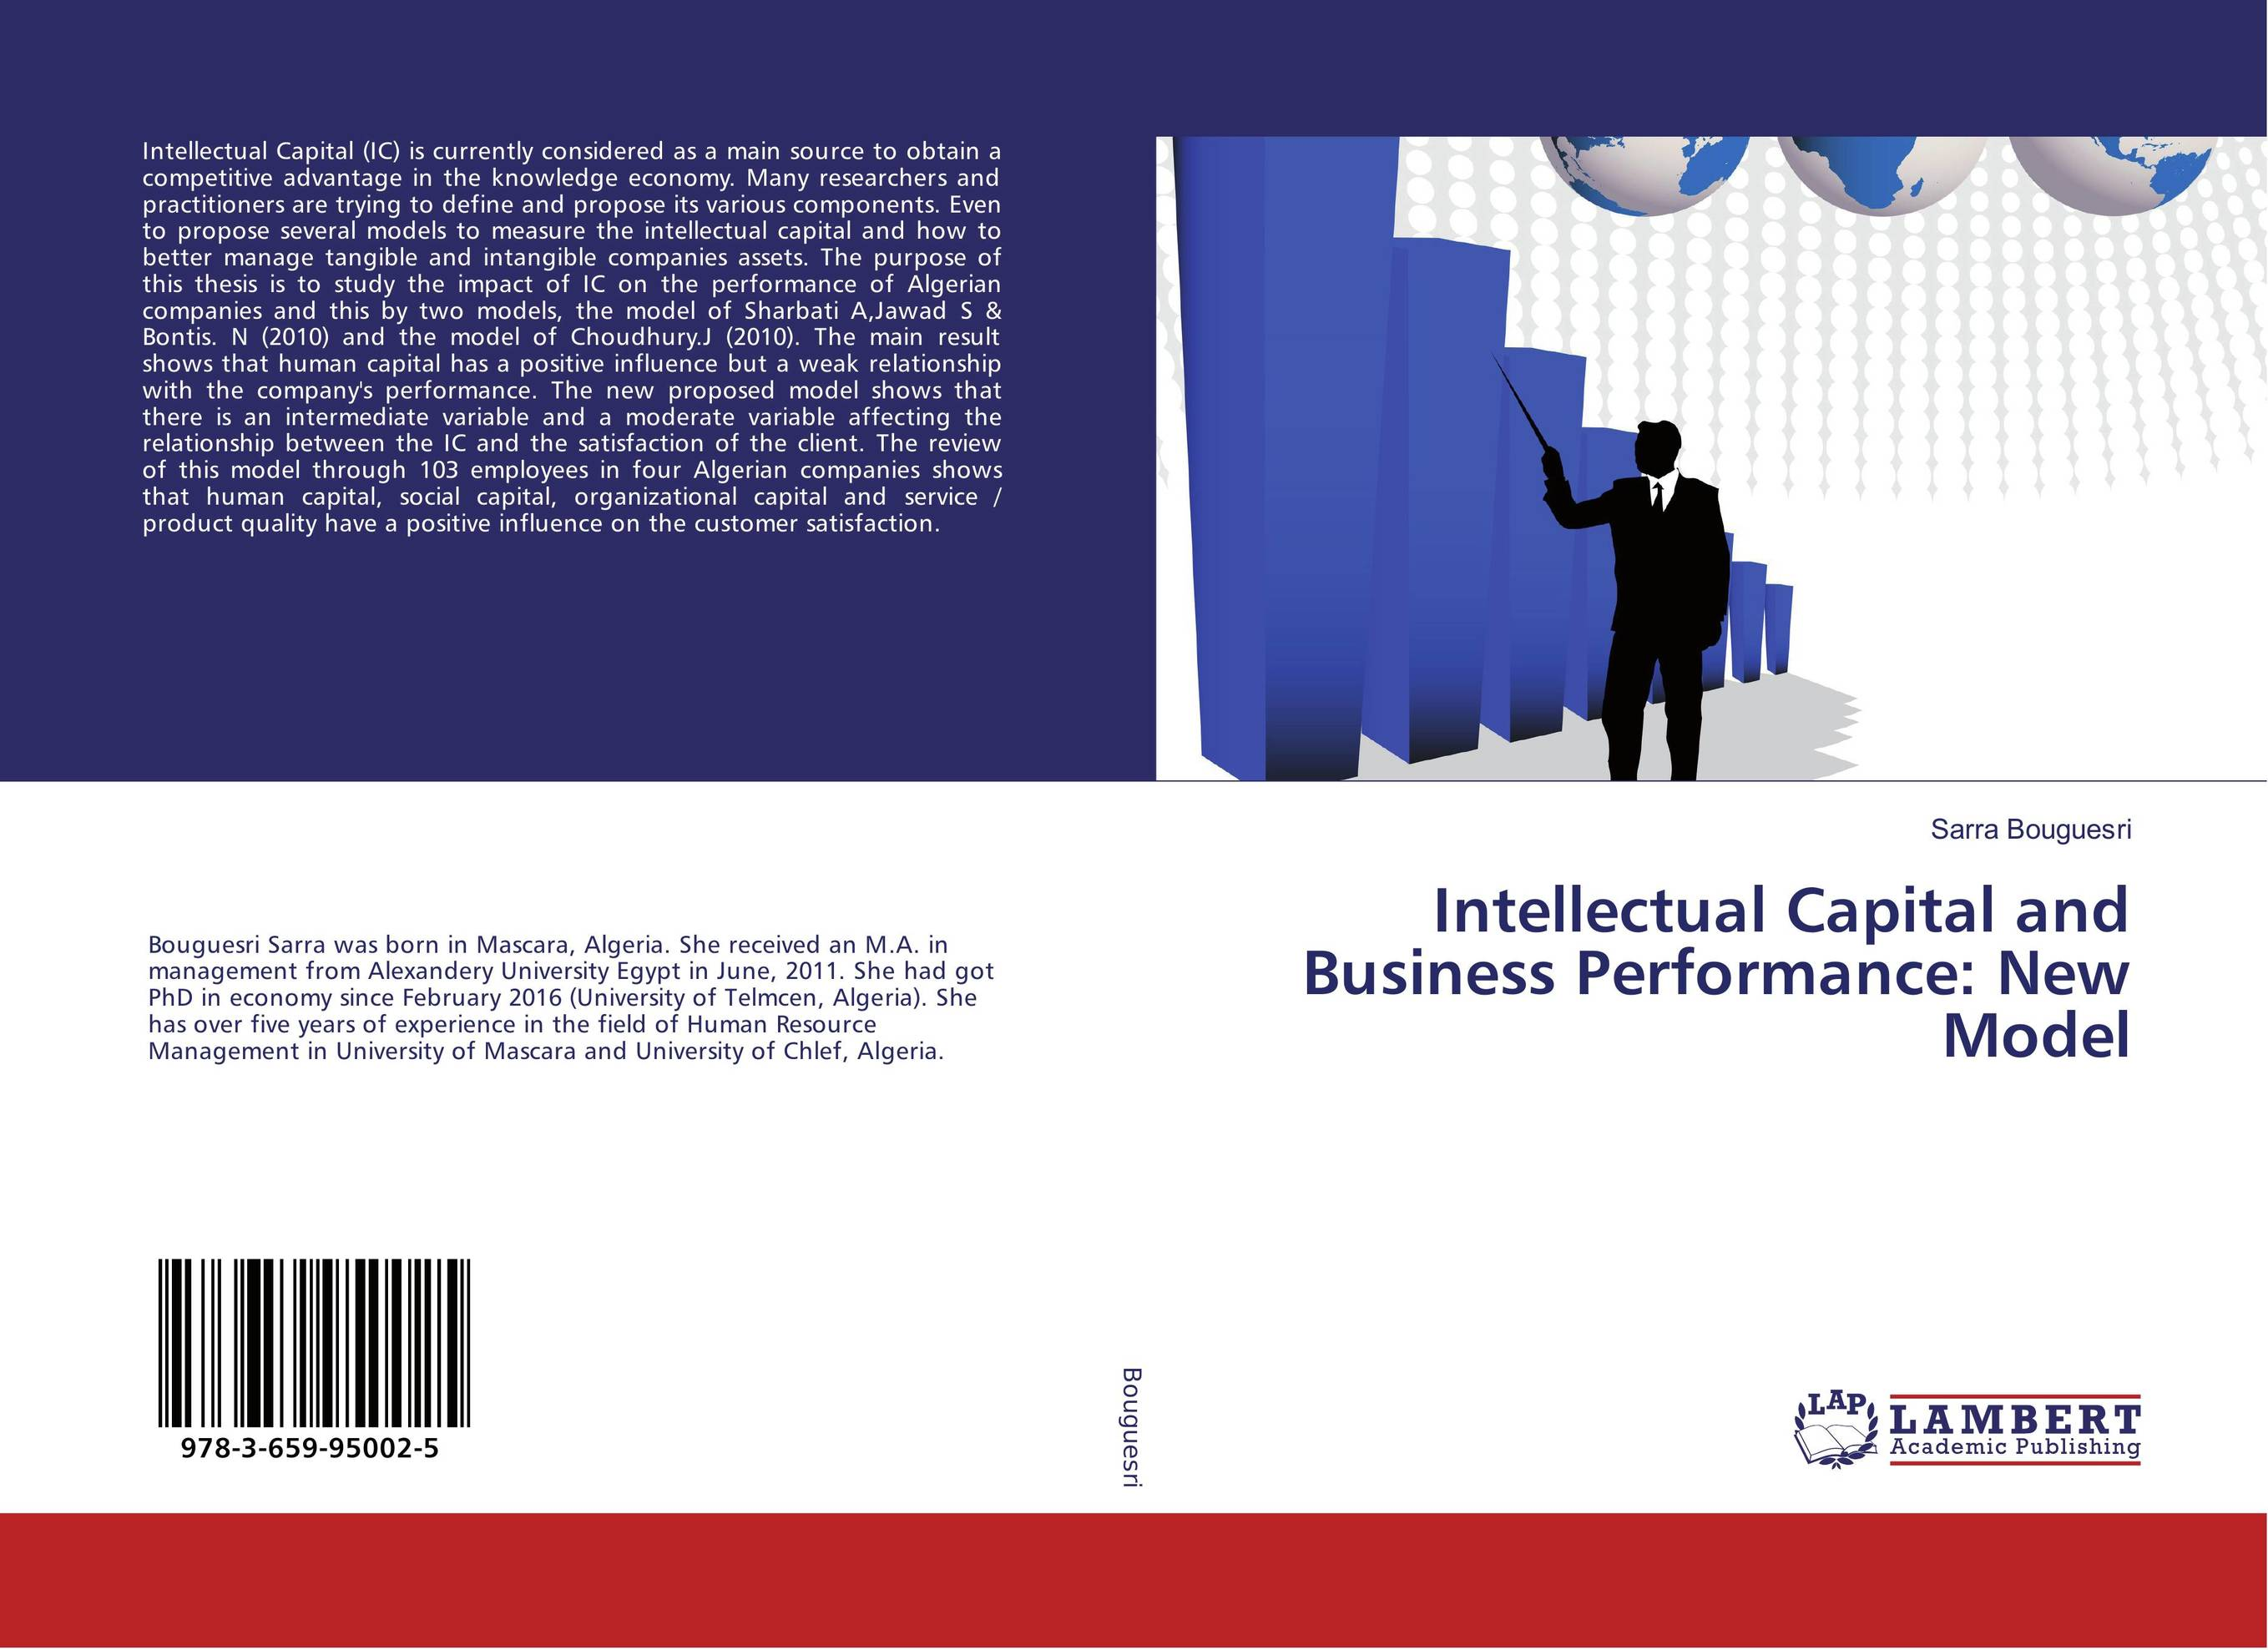 implications of intellectual capital on human This paper discusses the implications of intellectual capital (ic) for public institutions the source of the discussion derives from a research project undertaken in a major australian non-profit organization between 2001-2002 the project undertook a stakeholder analysis to identify the elements.